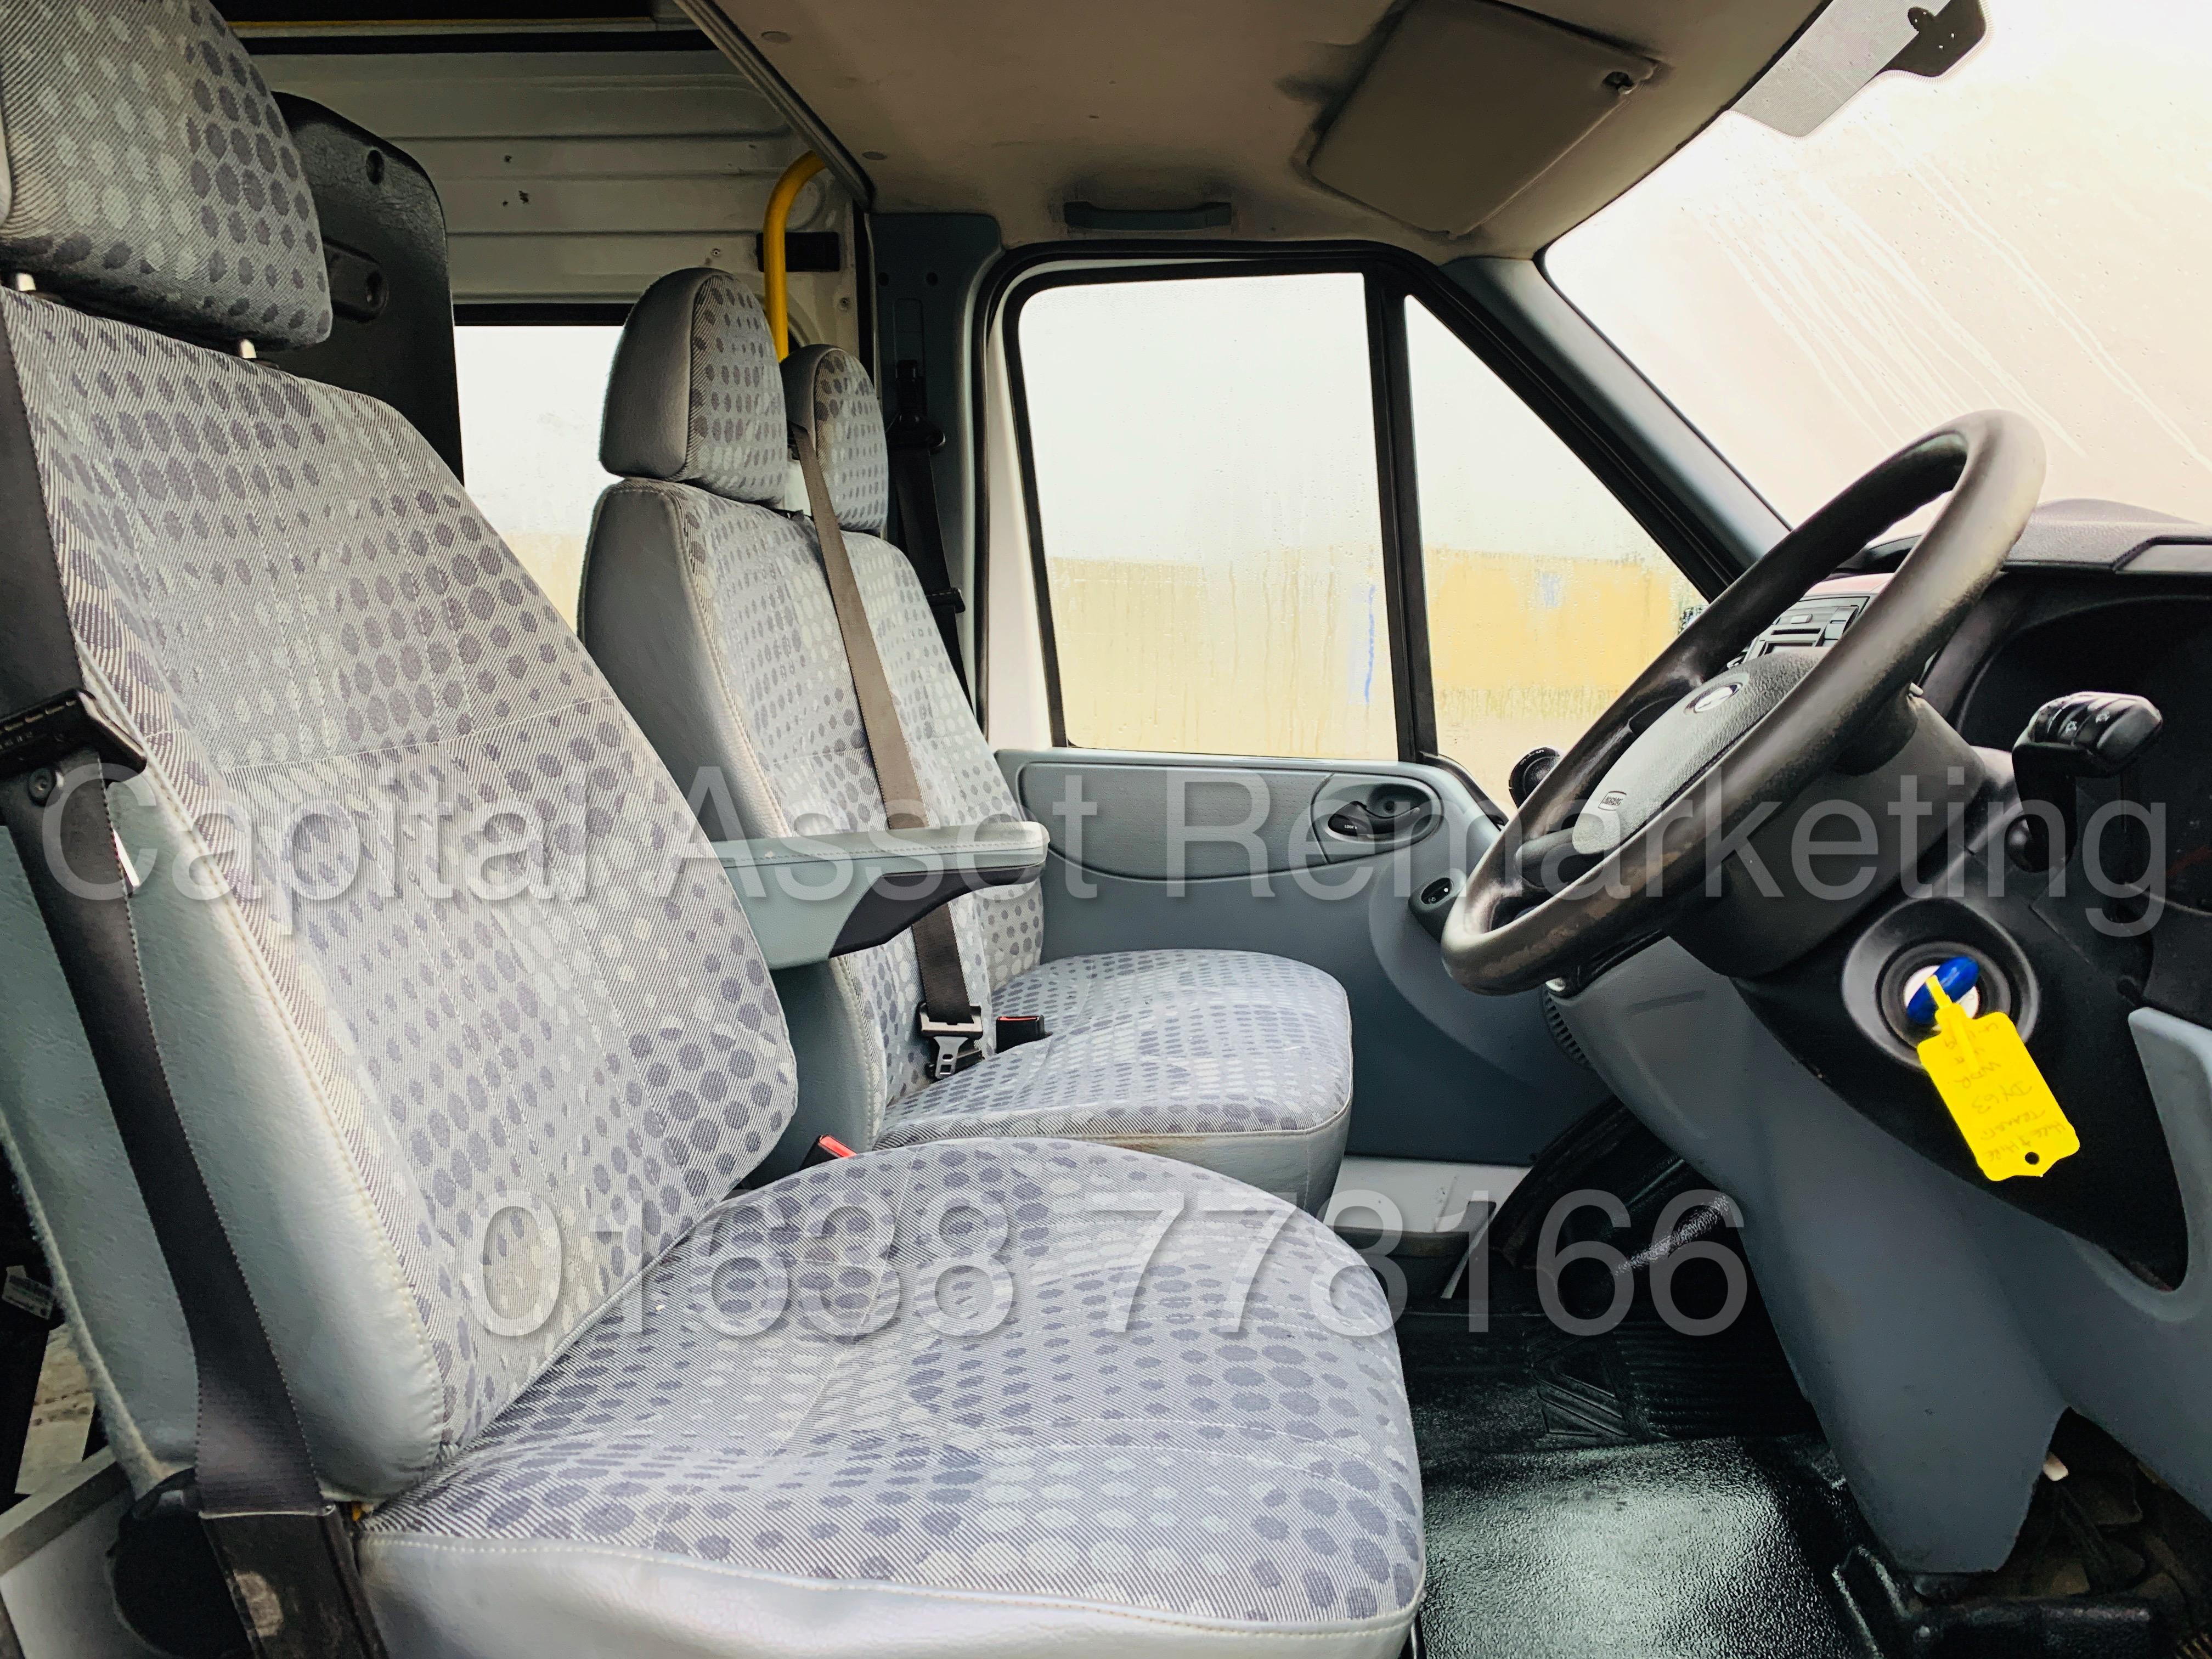 FORD TRANSIT T350 *LWB - 7 SEATER MESSING UNIT* (2014 MODEL) '2.4 TDCI - 6 SPEED' *ON BOARD TOILET* - Image 32 of 44